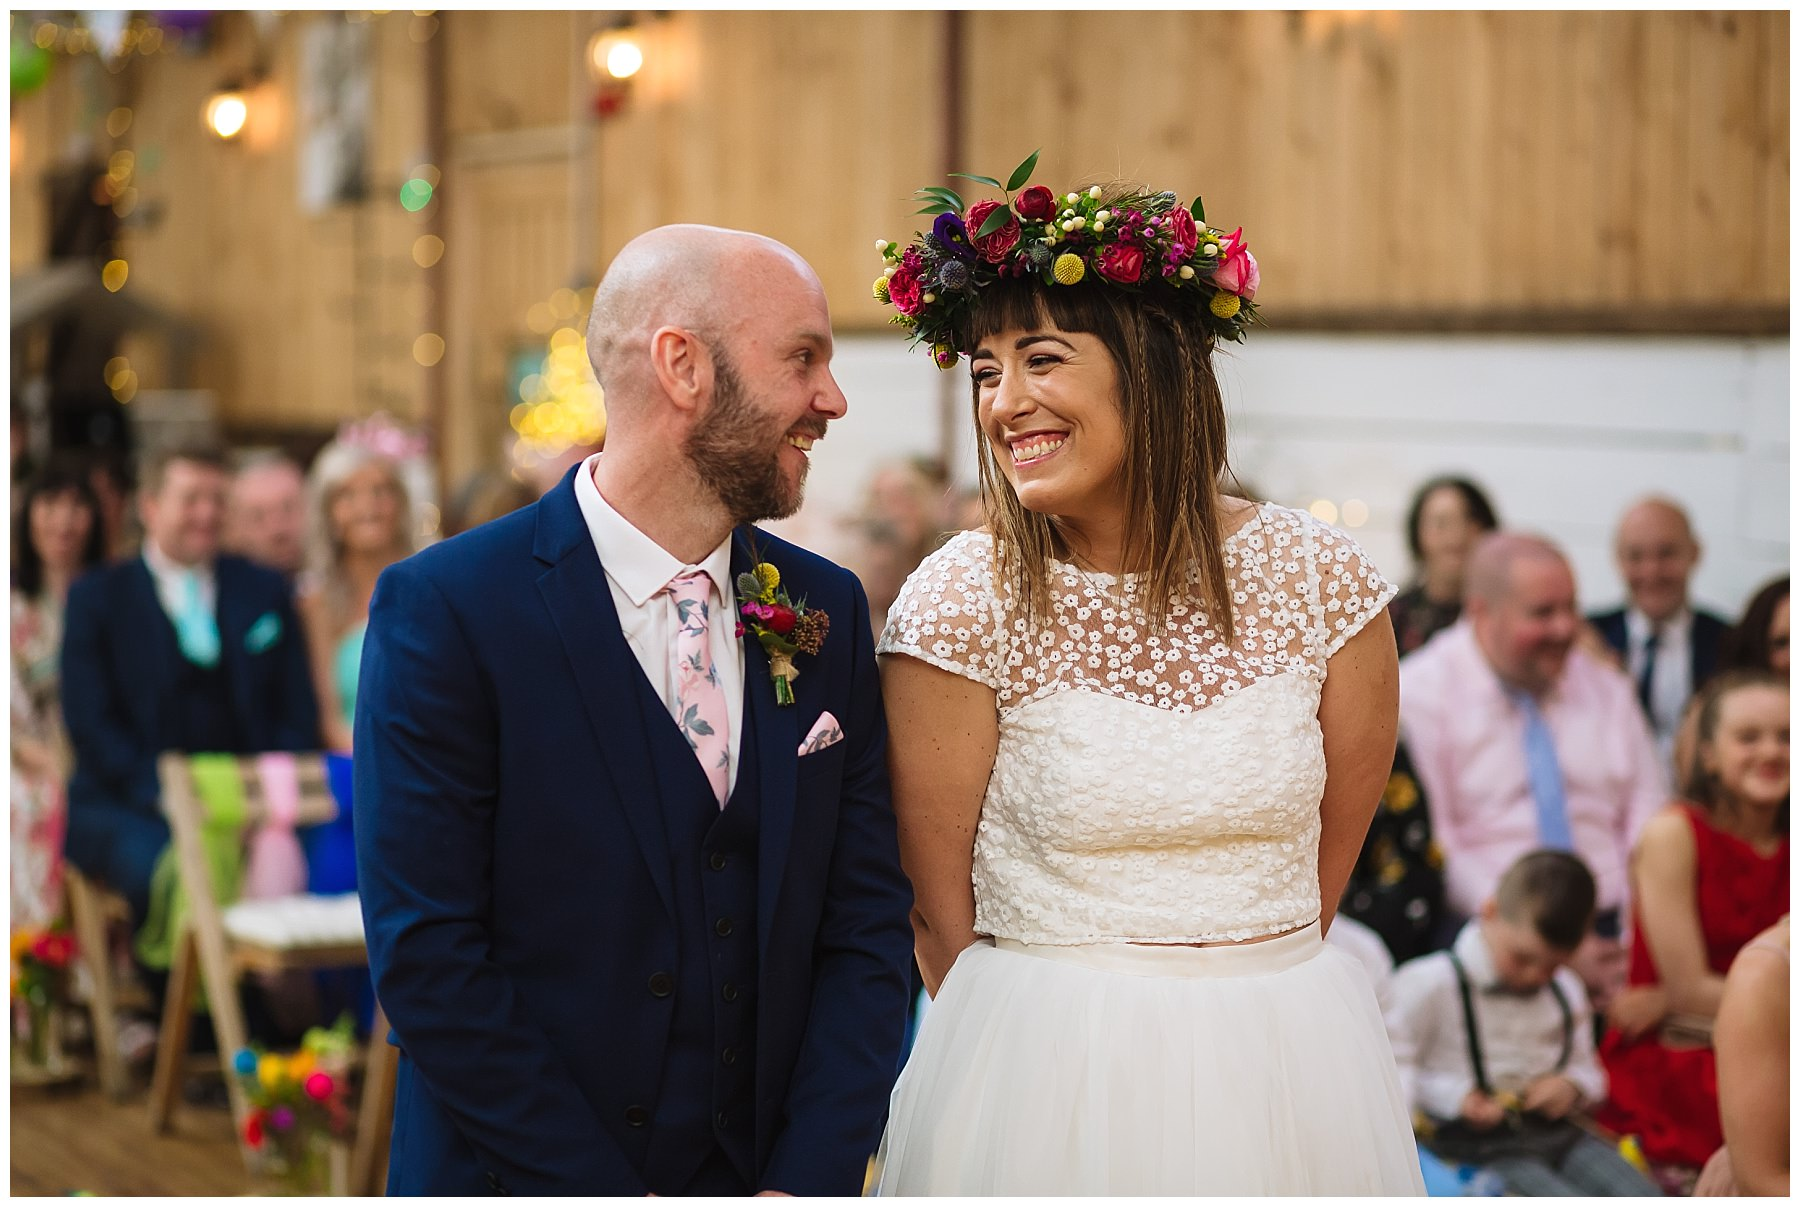 bride and groom smile at each other during quirky wedding at the wellbeing farm